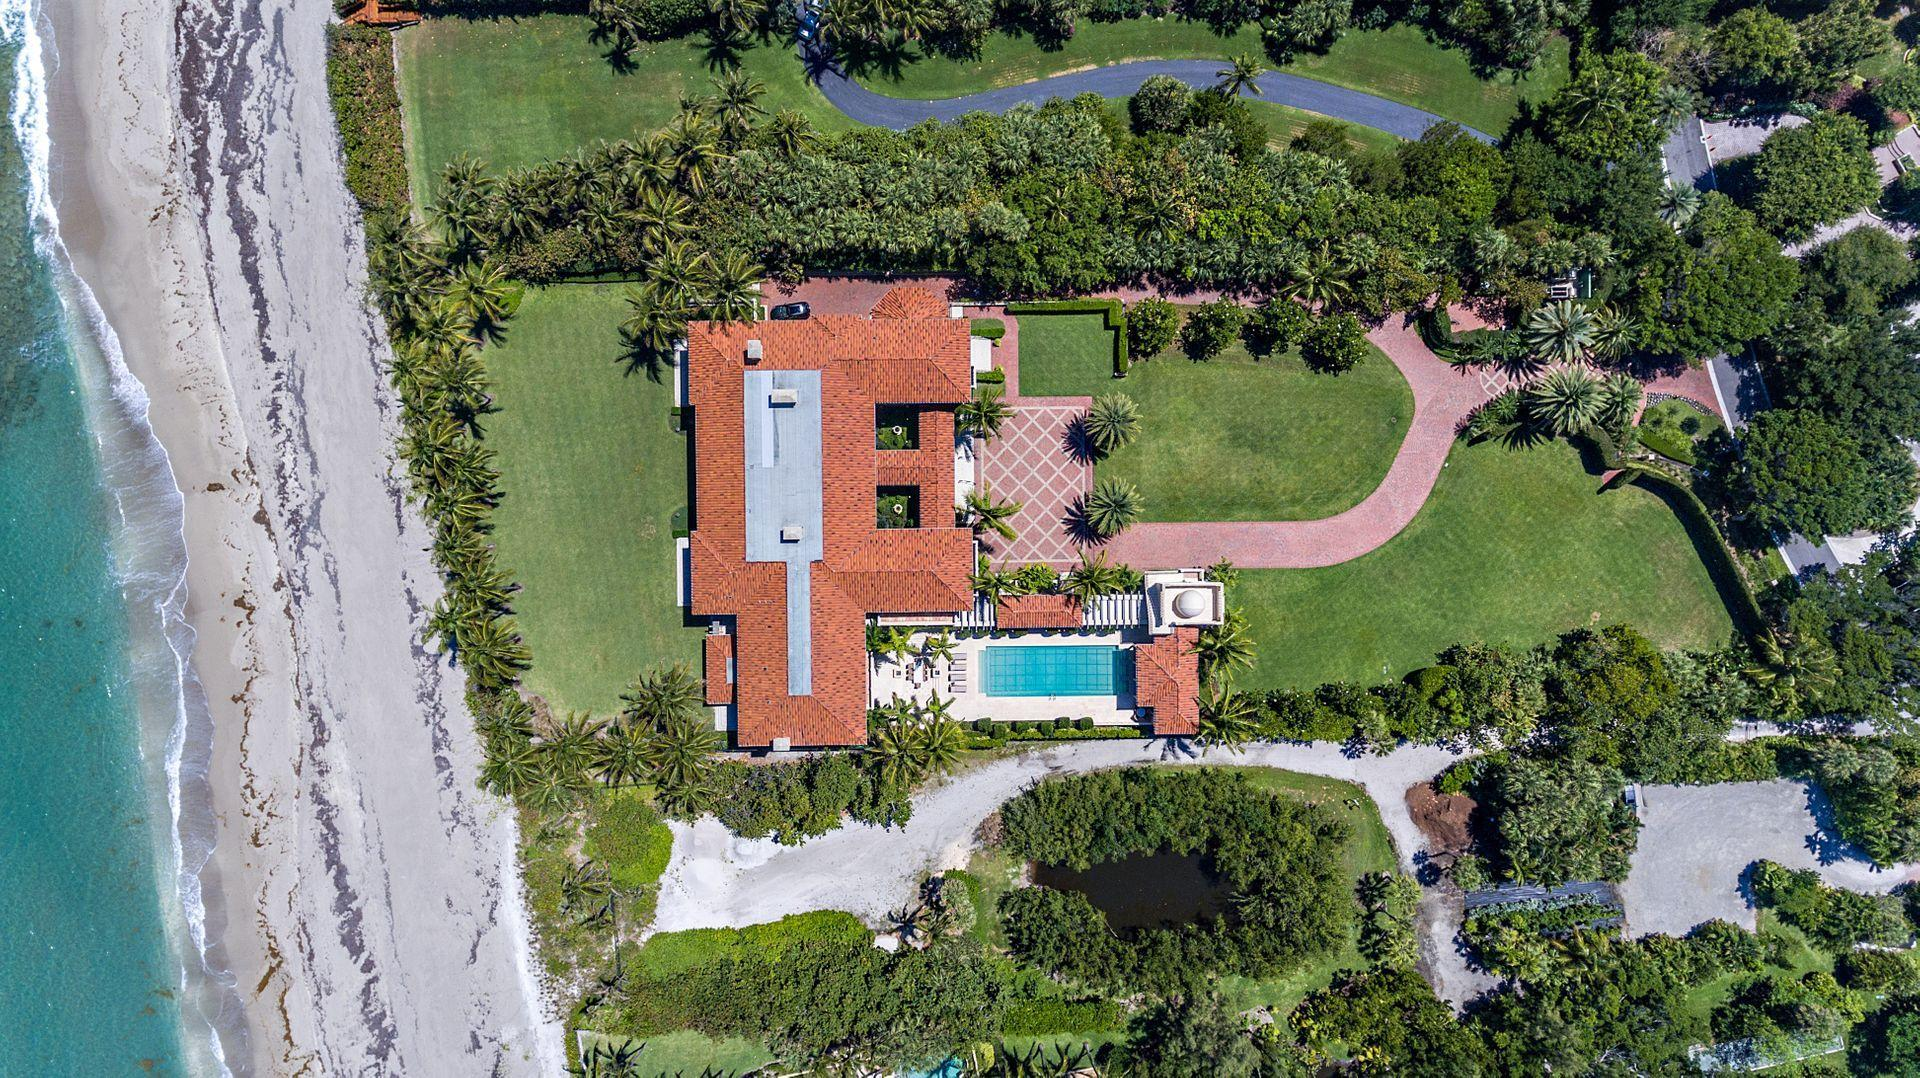 12088 Banyan Road, North Palm Beach, Florida 33408, 9 Bedrooms Bedrooms, ,12.5 BathroomsBathrooms,Single family detached,For sale,Banyan,RX-10534489